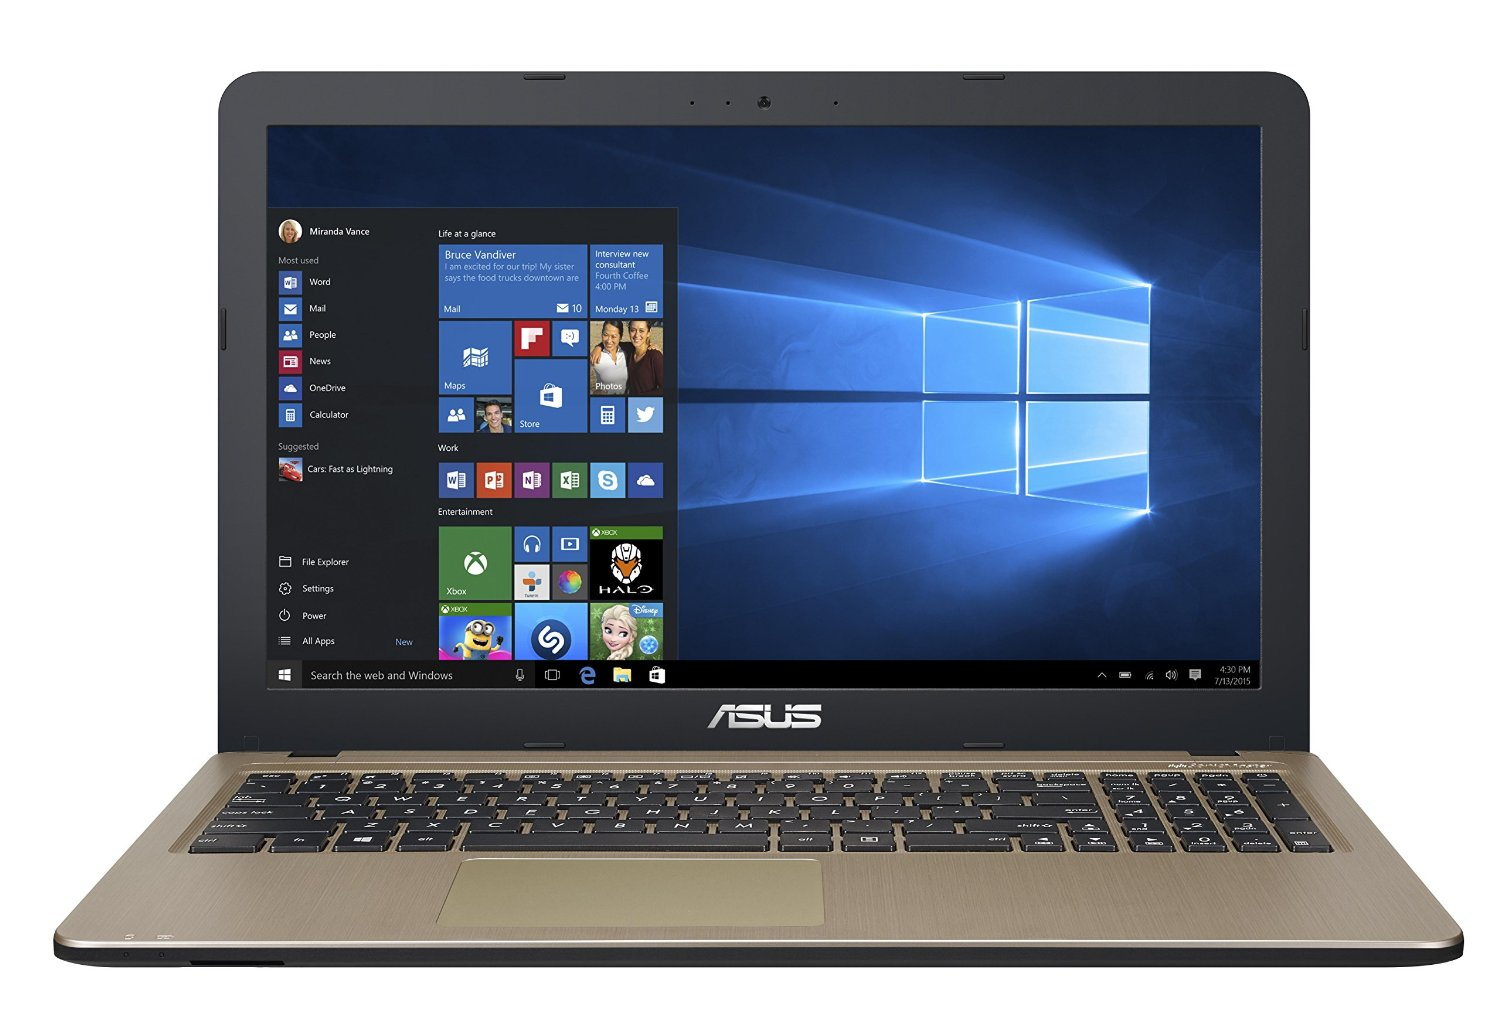 best ASUS VivoBook laptop under 700 pounds